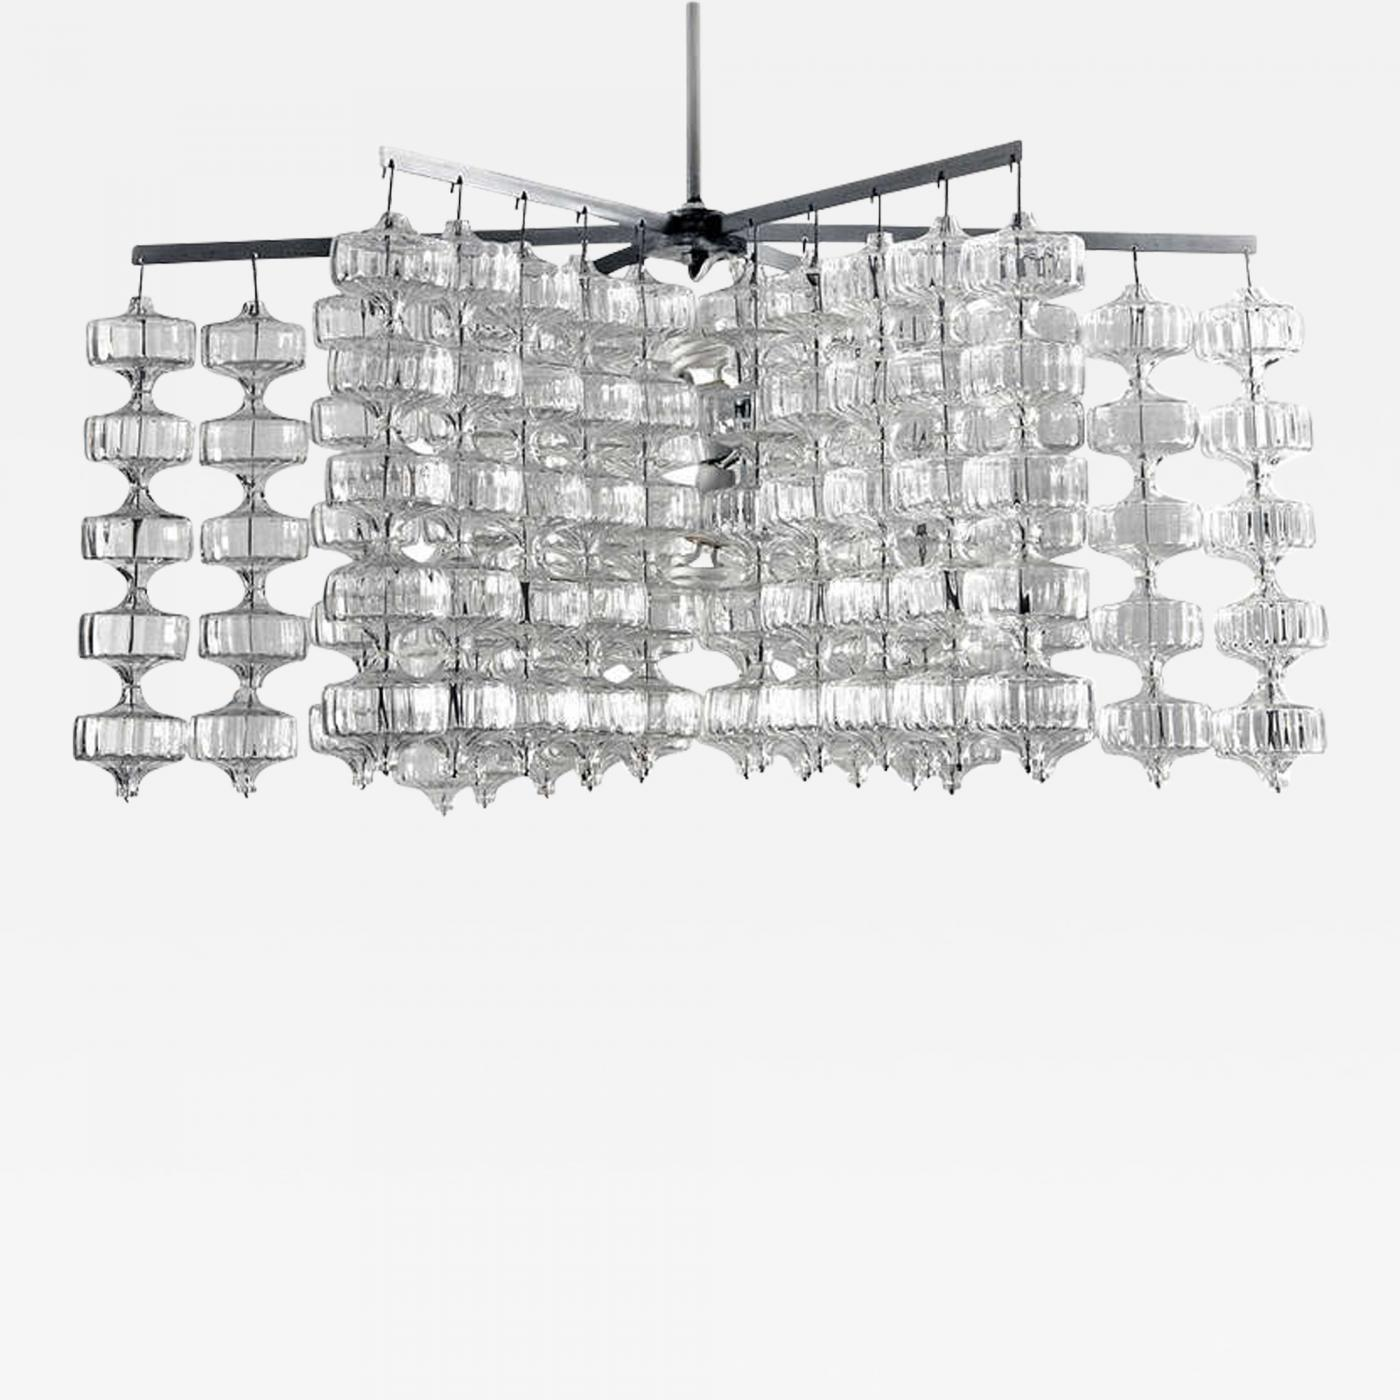 Aloys Gangkofner and Rare Aloys Gangkofner Chandelier 2